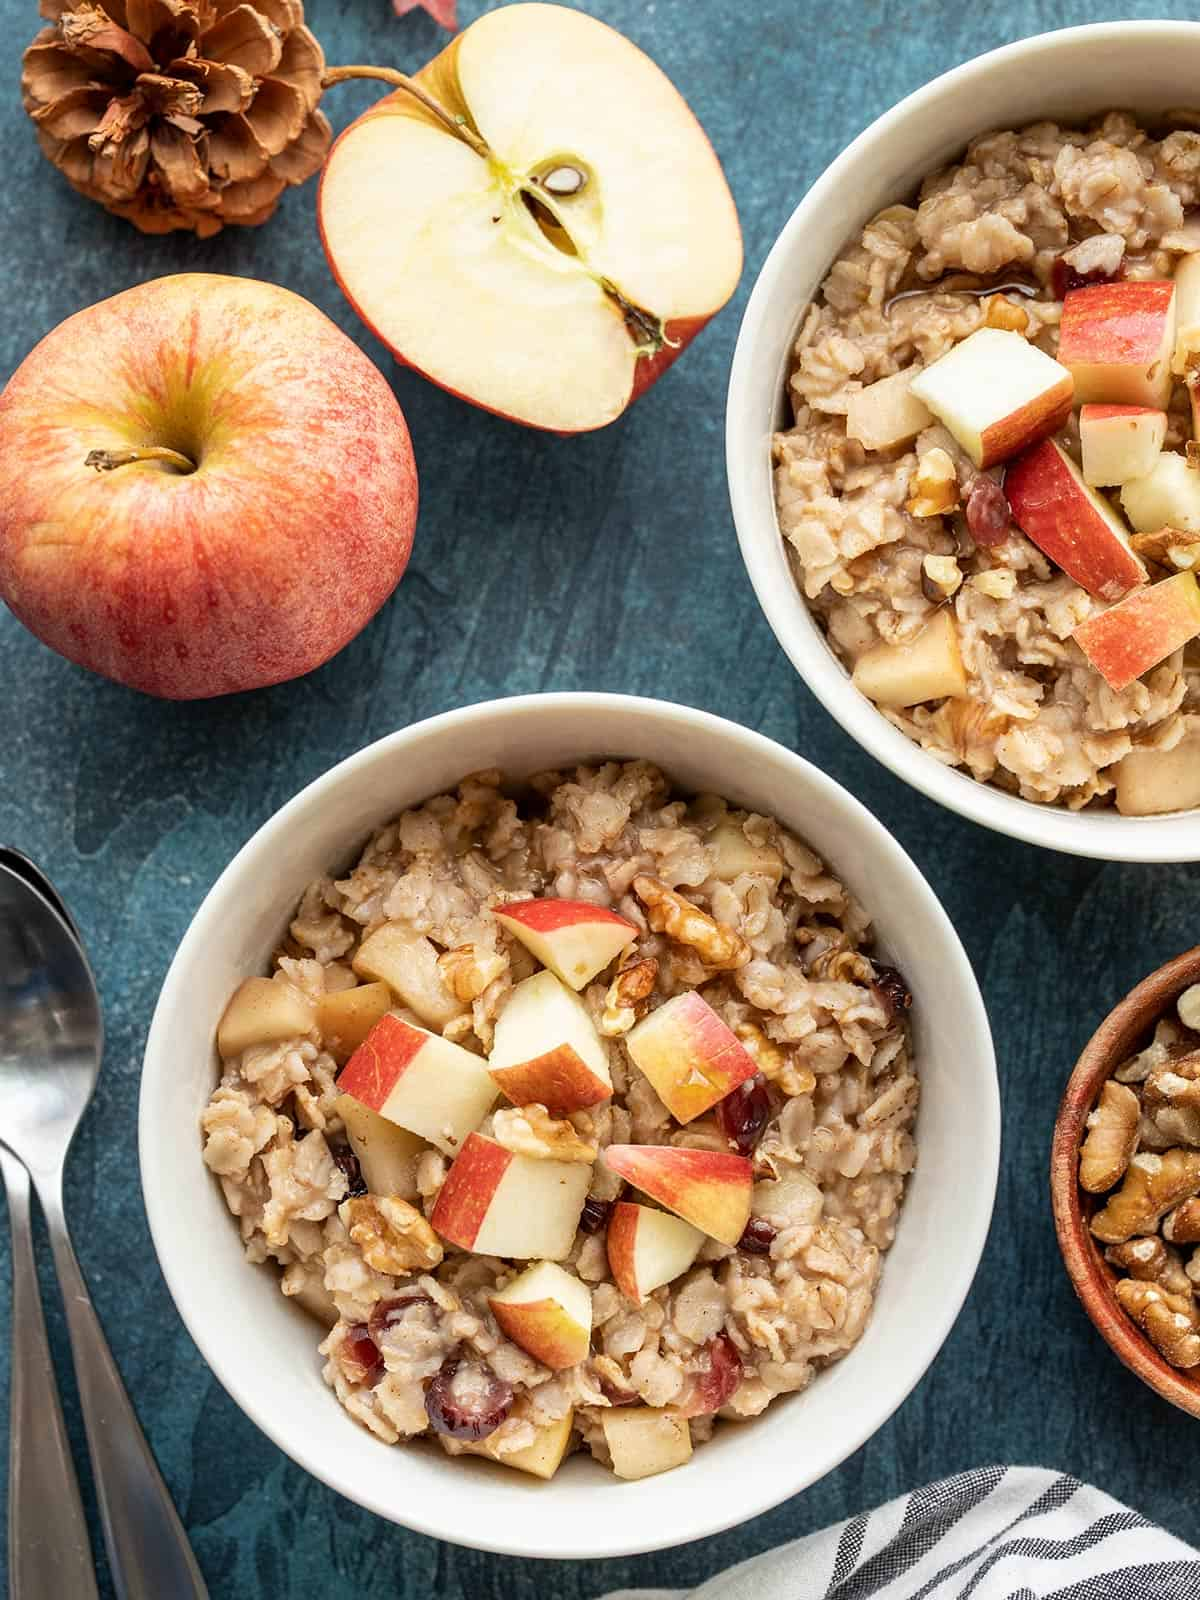 Overhead view of two bowls of autumn fruit and nut oatmeal